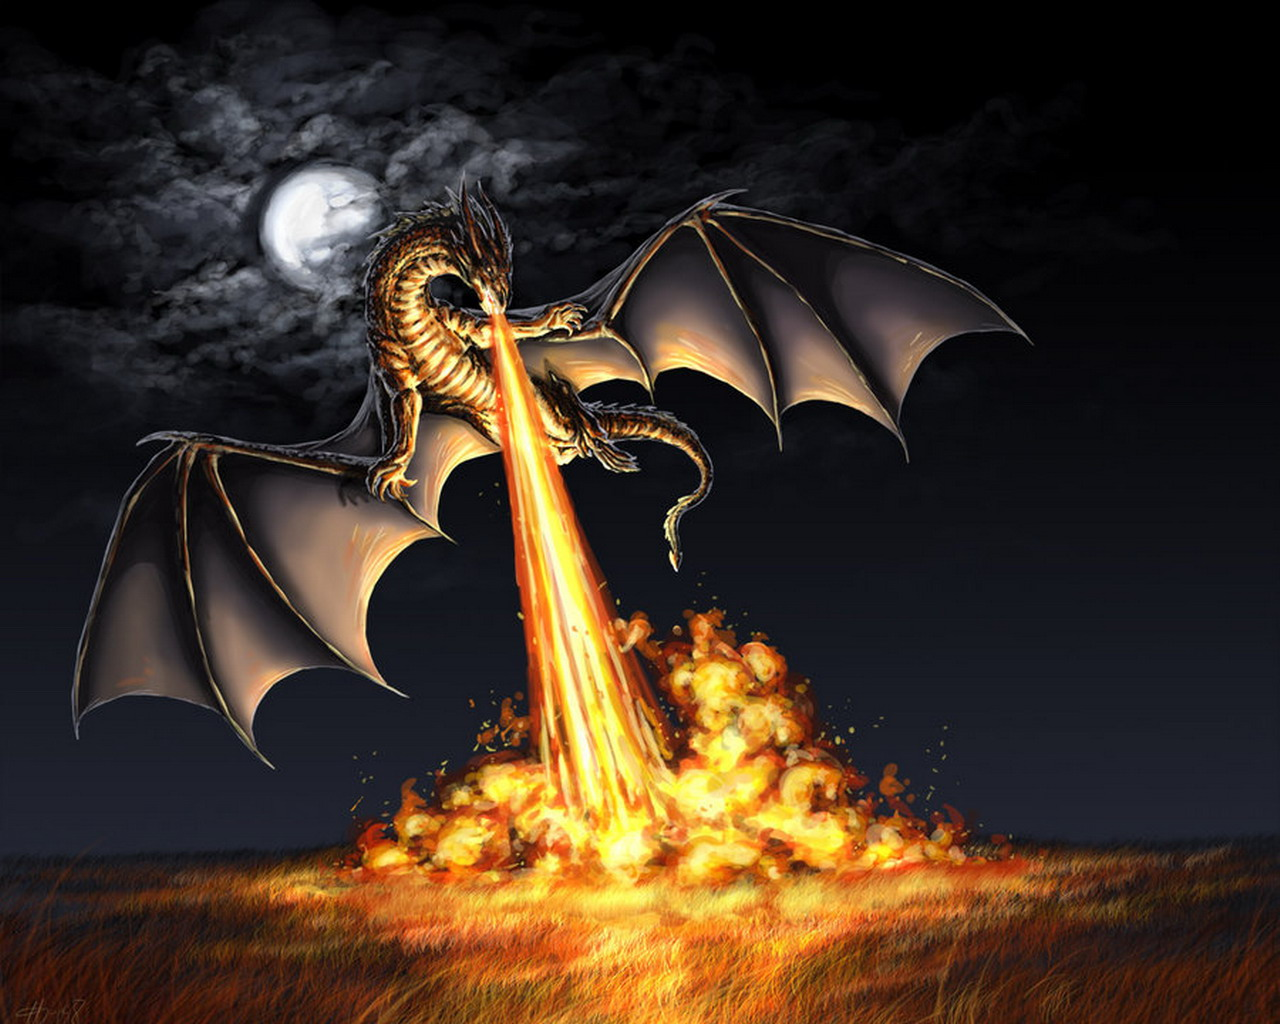 Cool Dragons Breathing Fire